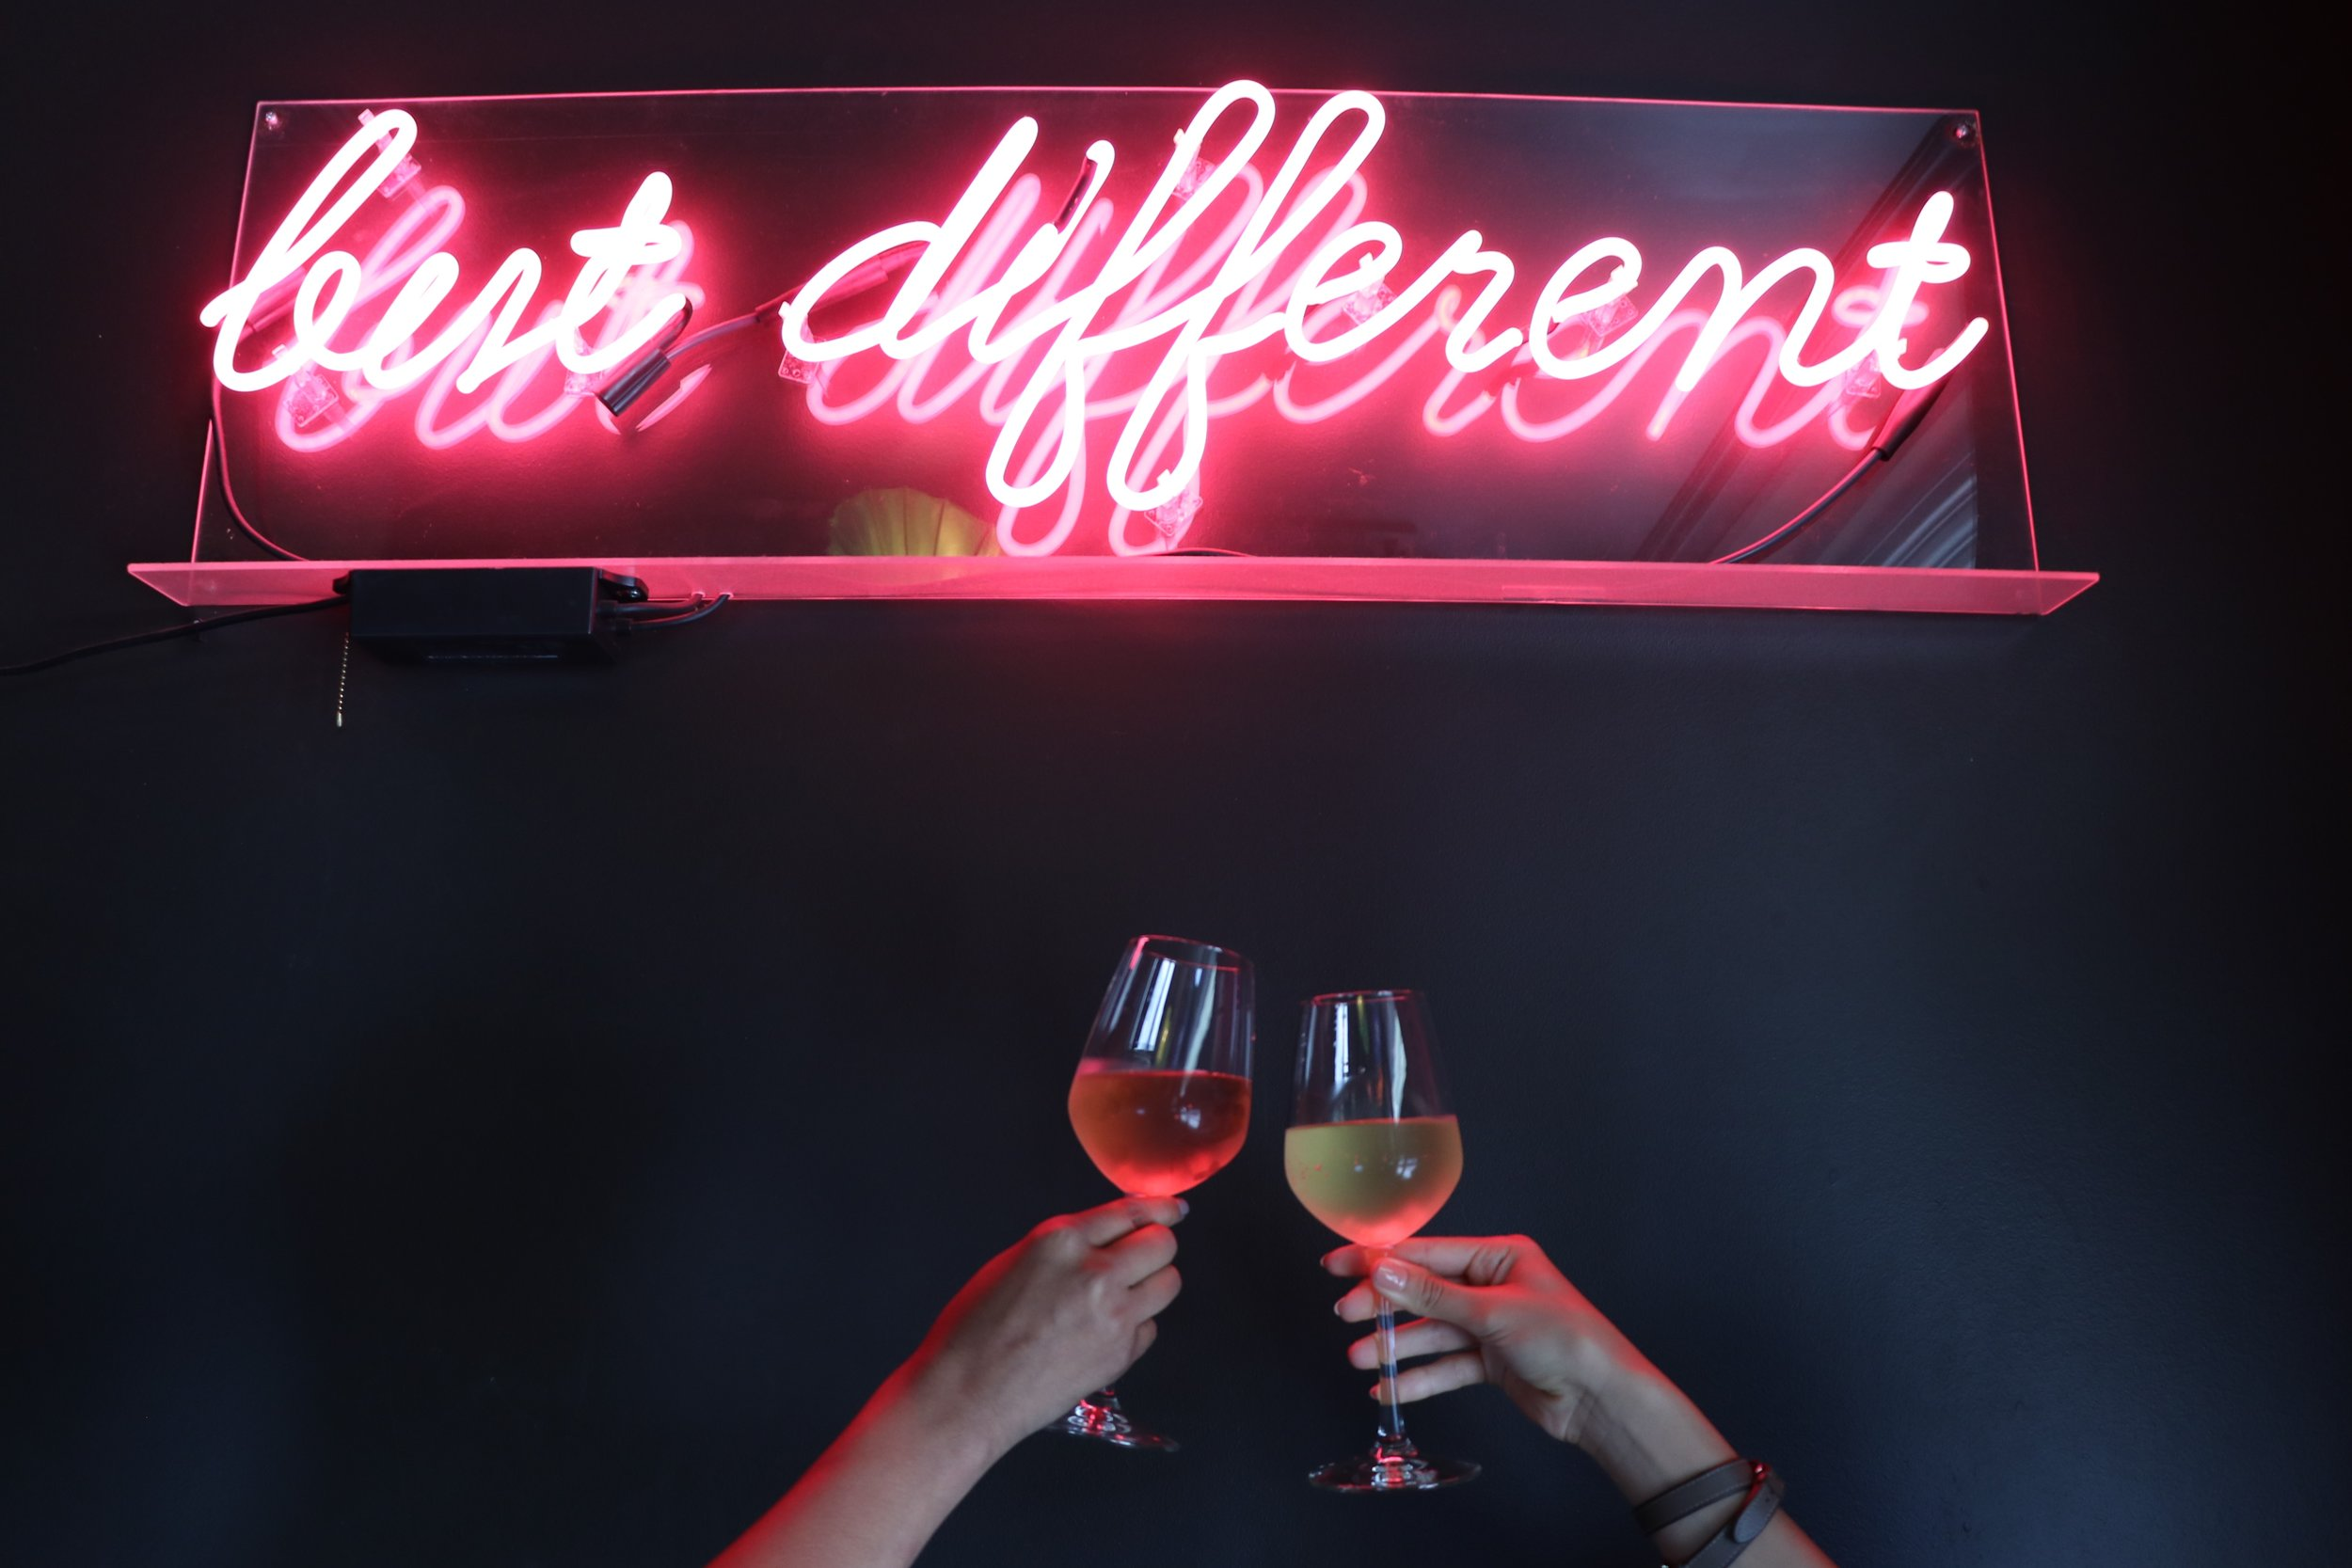 Same Same but different and wine